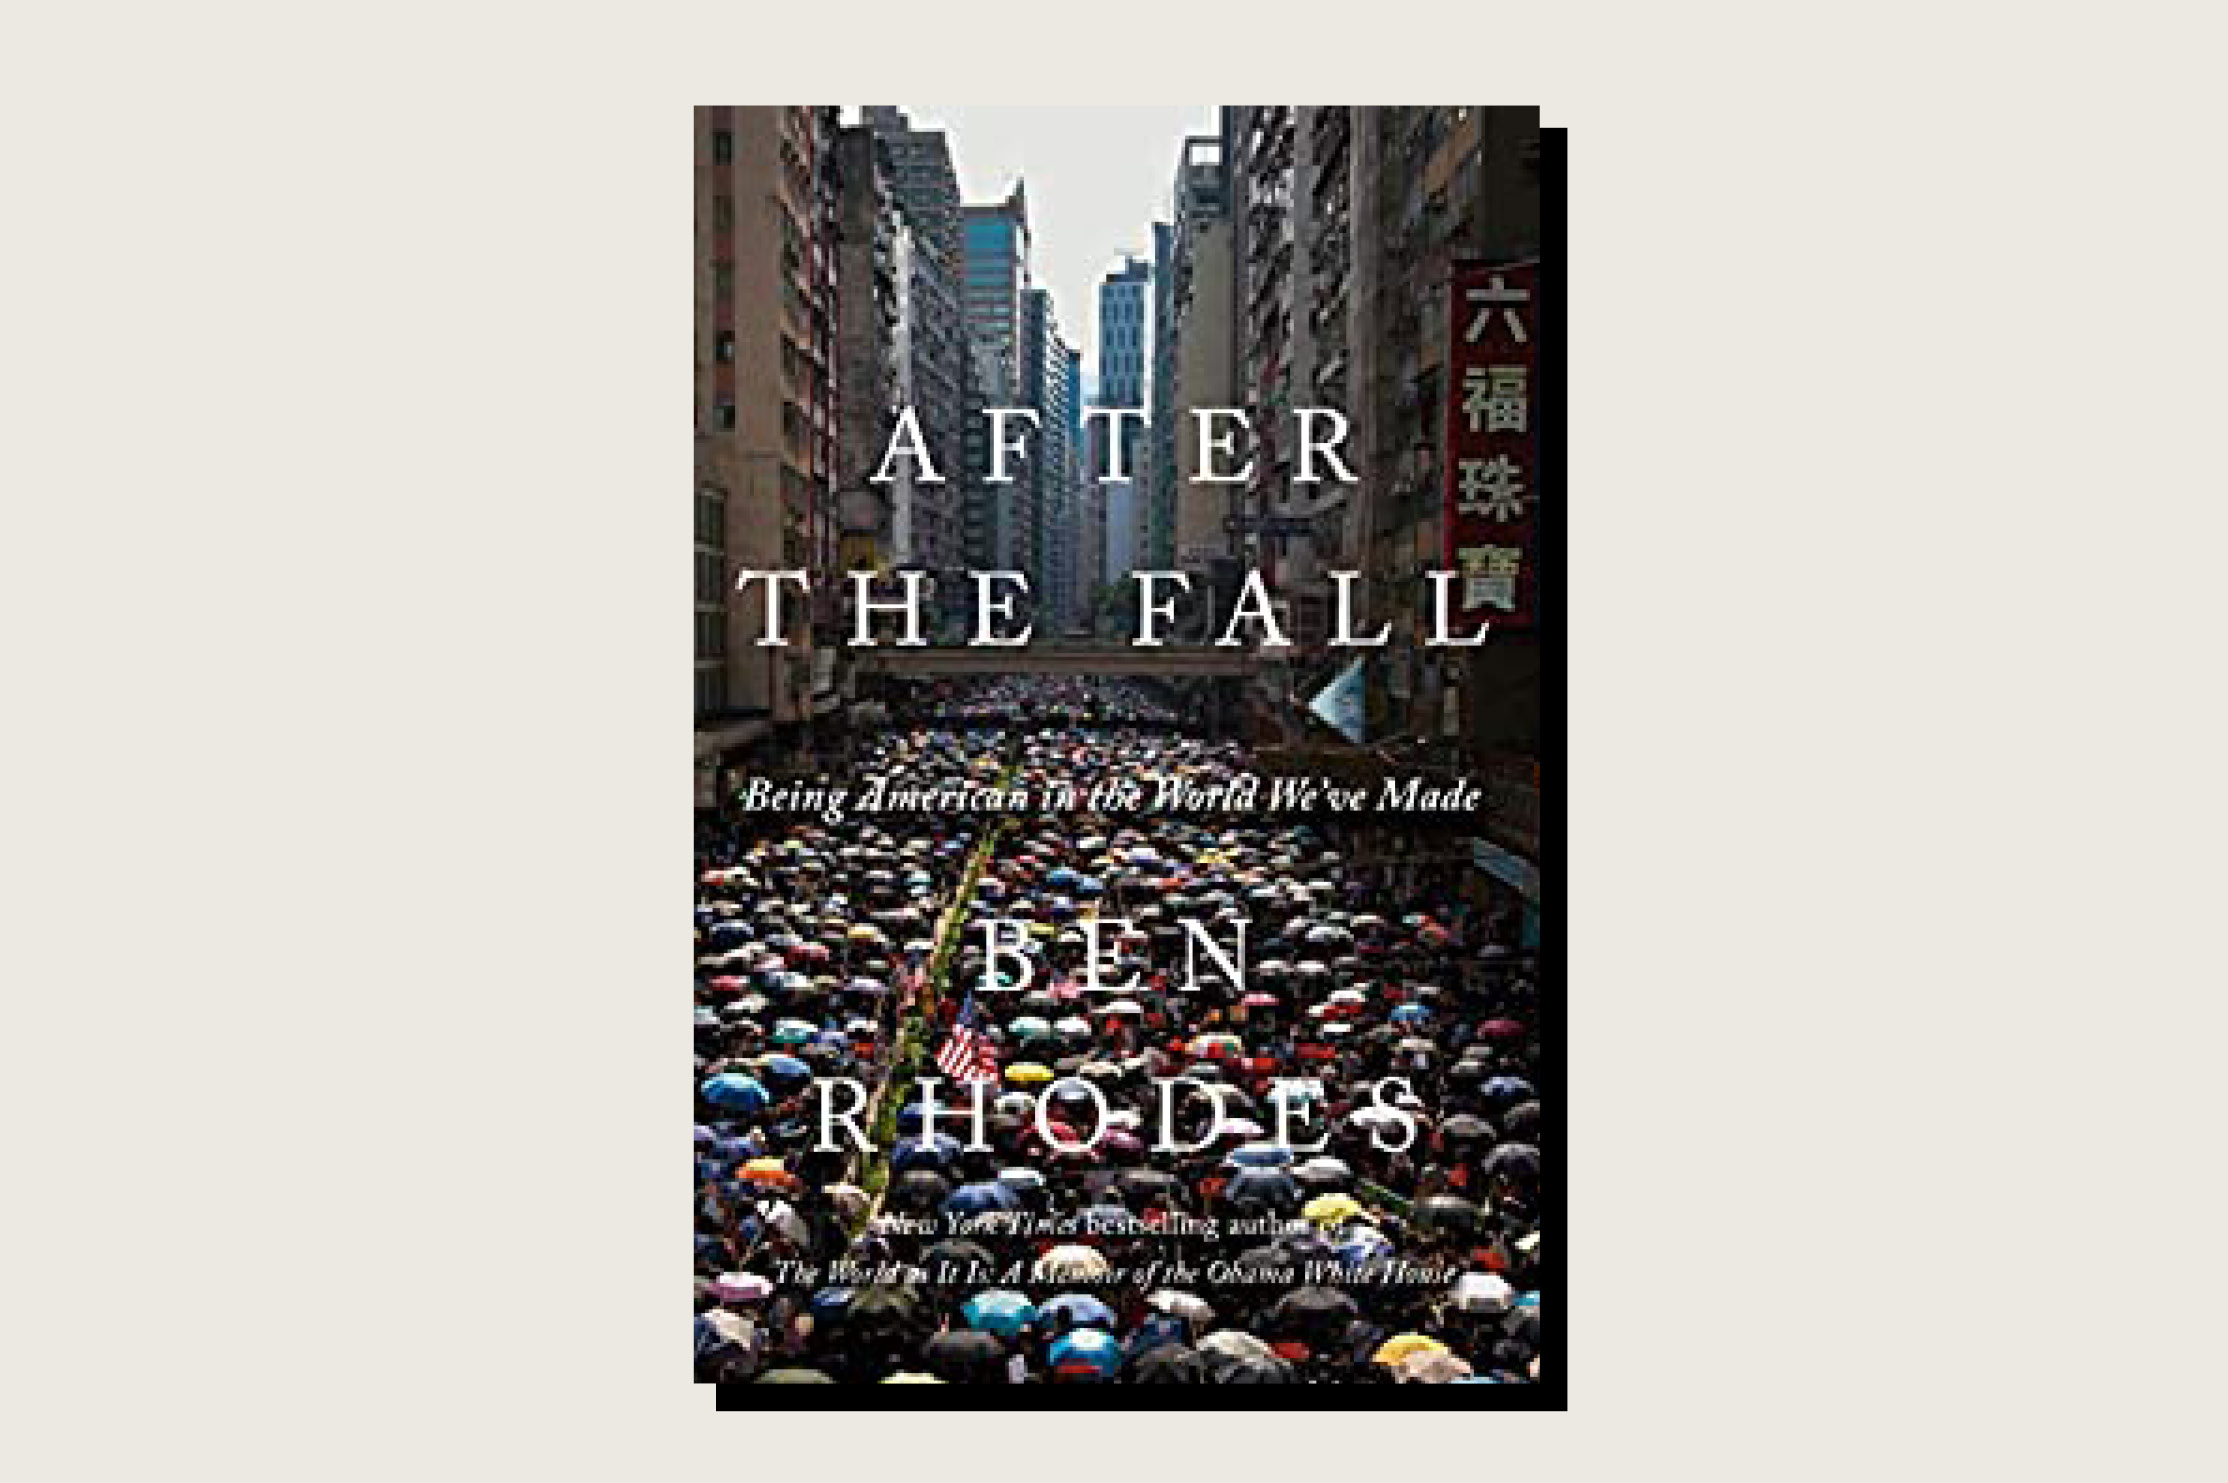 After the Fall: Being American in the World We've Made, Ben Rhodes, Random House, 384 pp., , June 2021